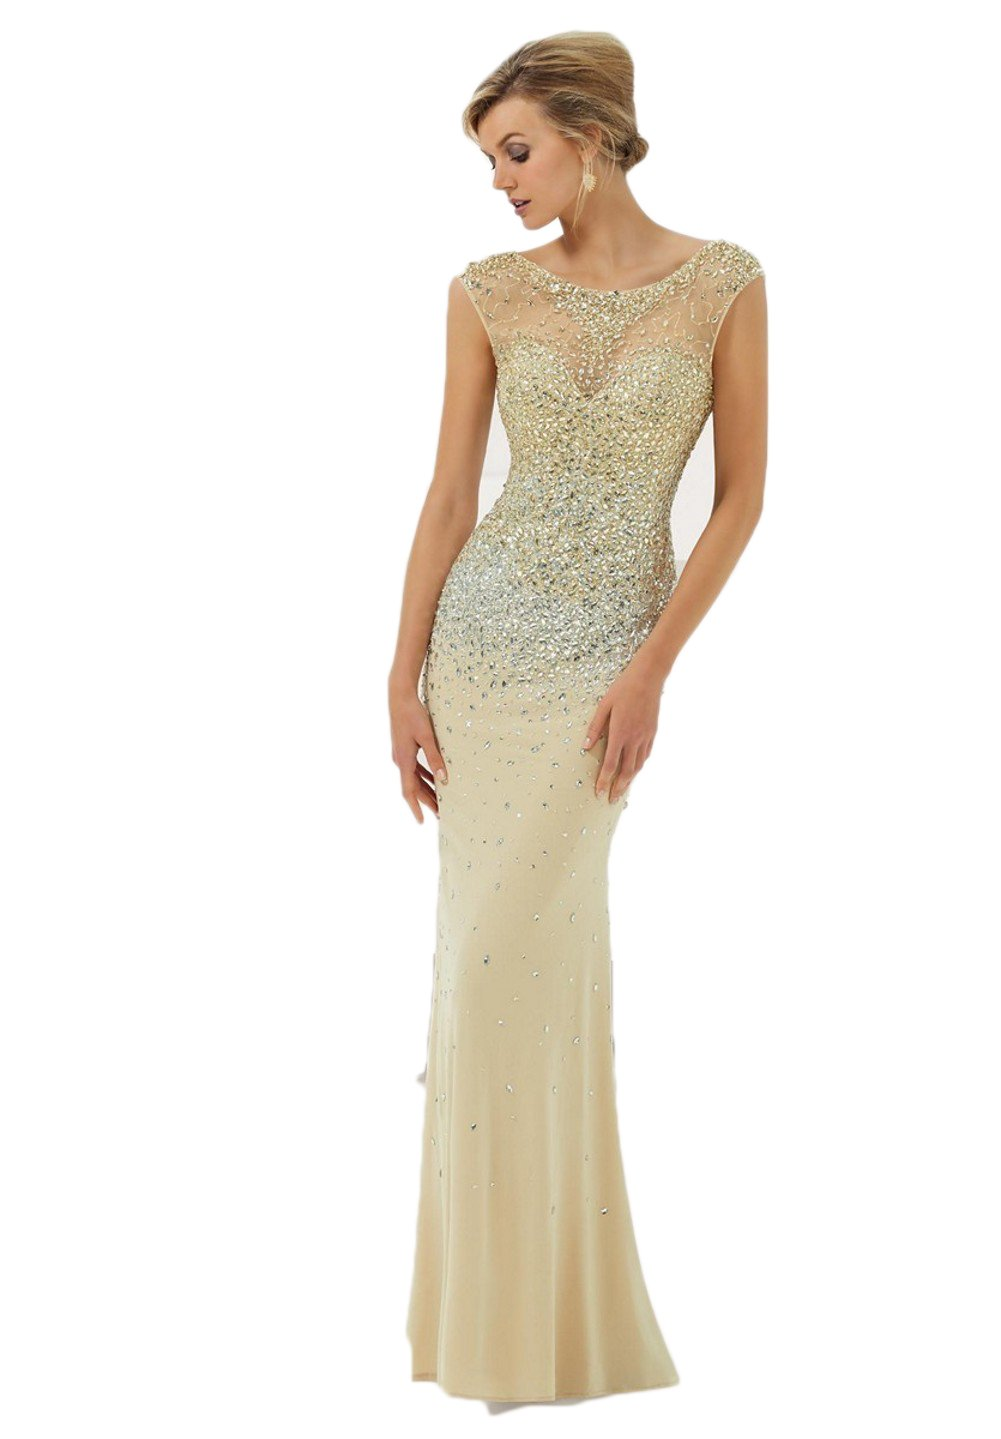 Love Dress Scop Beading Floor lenght Prom Dress Wedding Party Gown Champagne Us 16